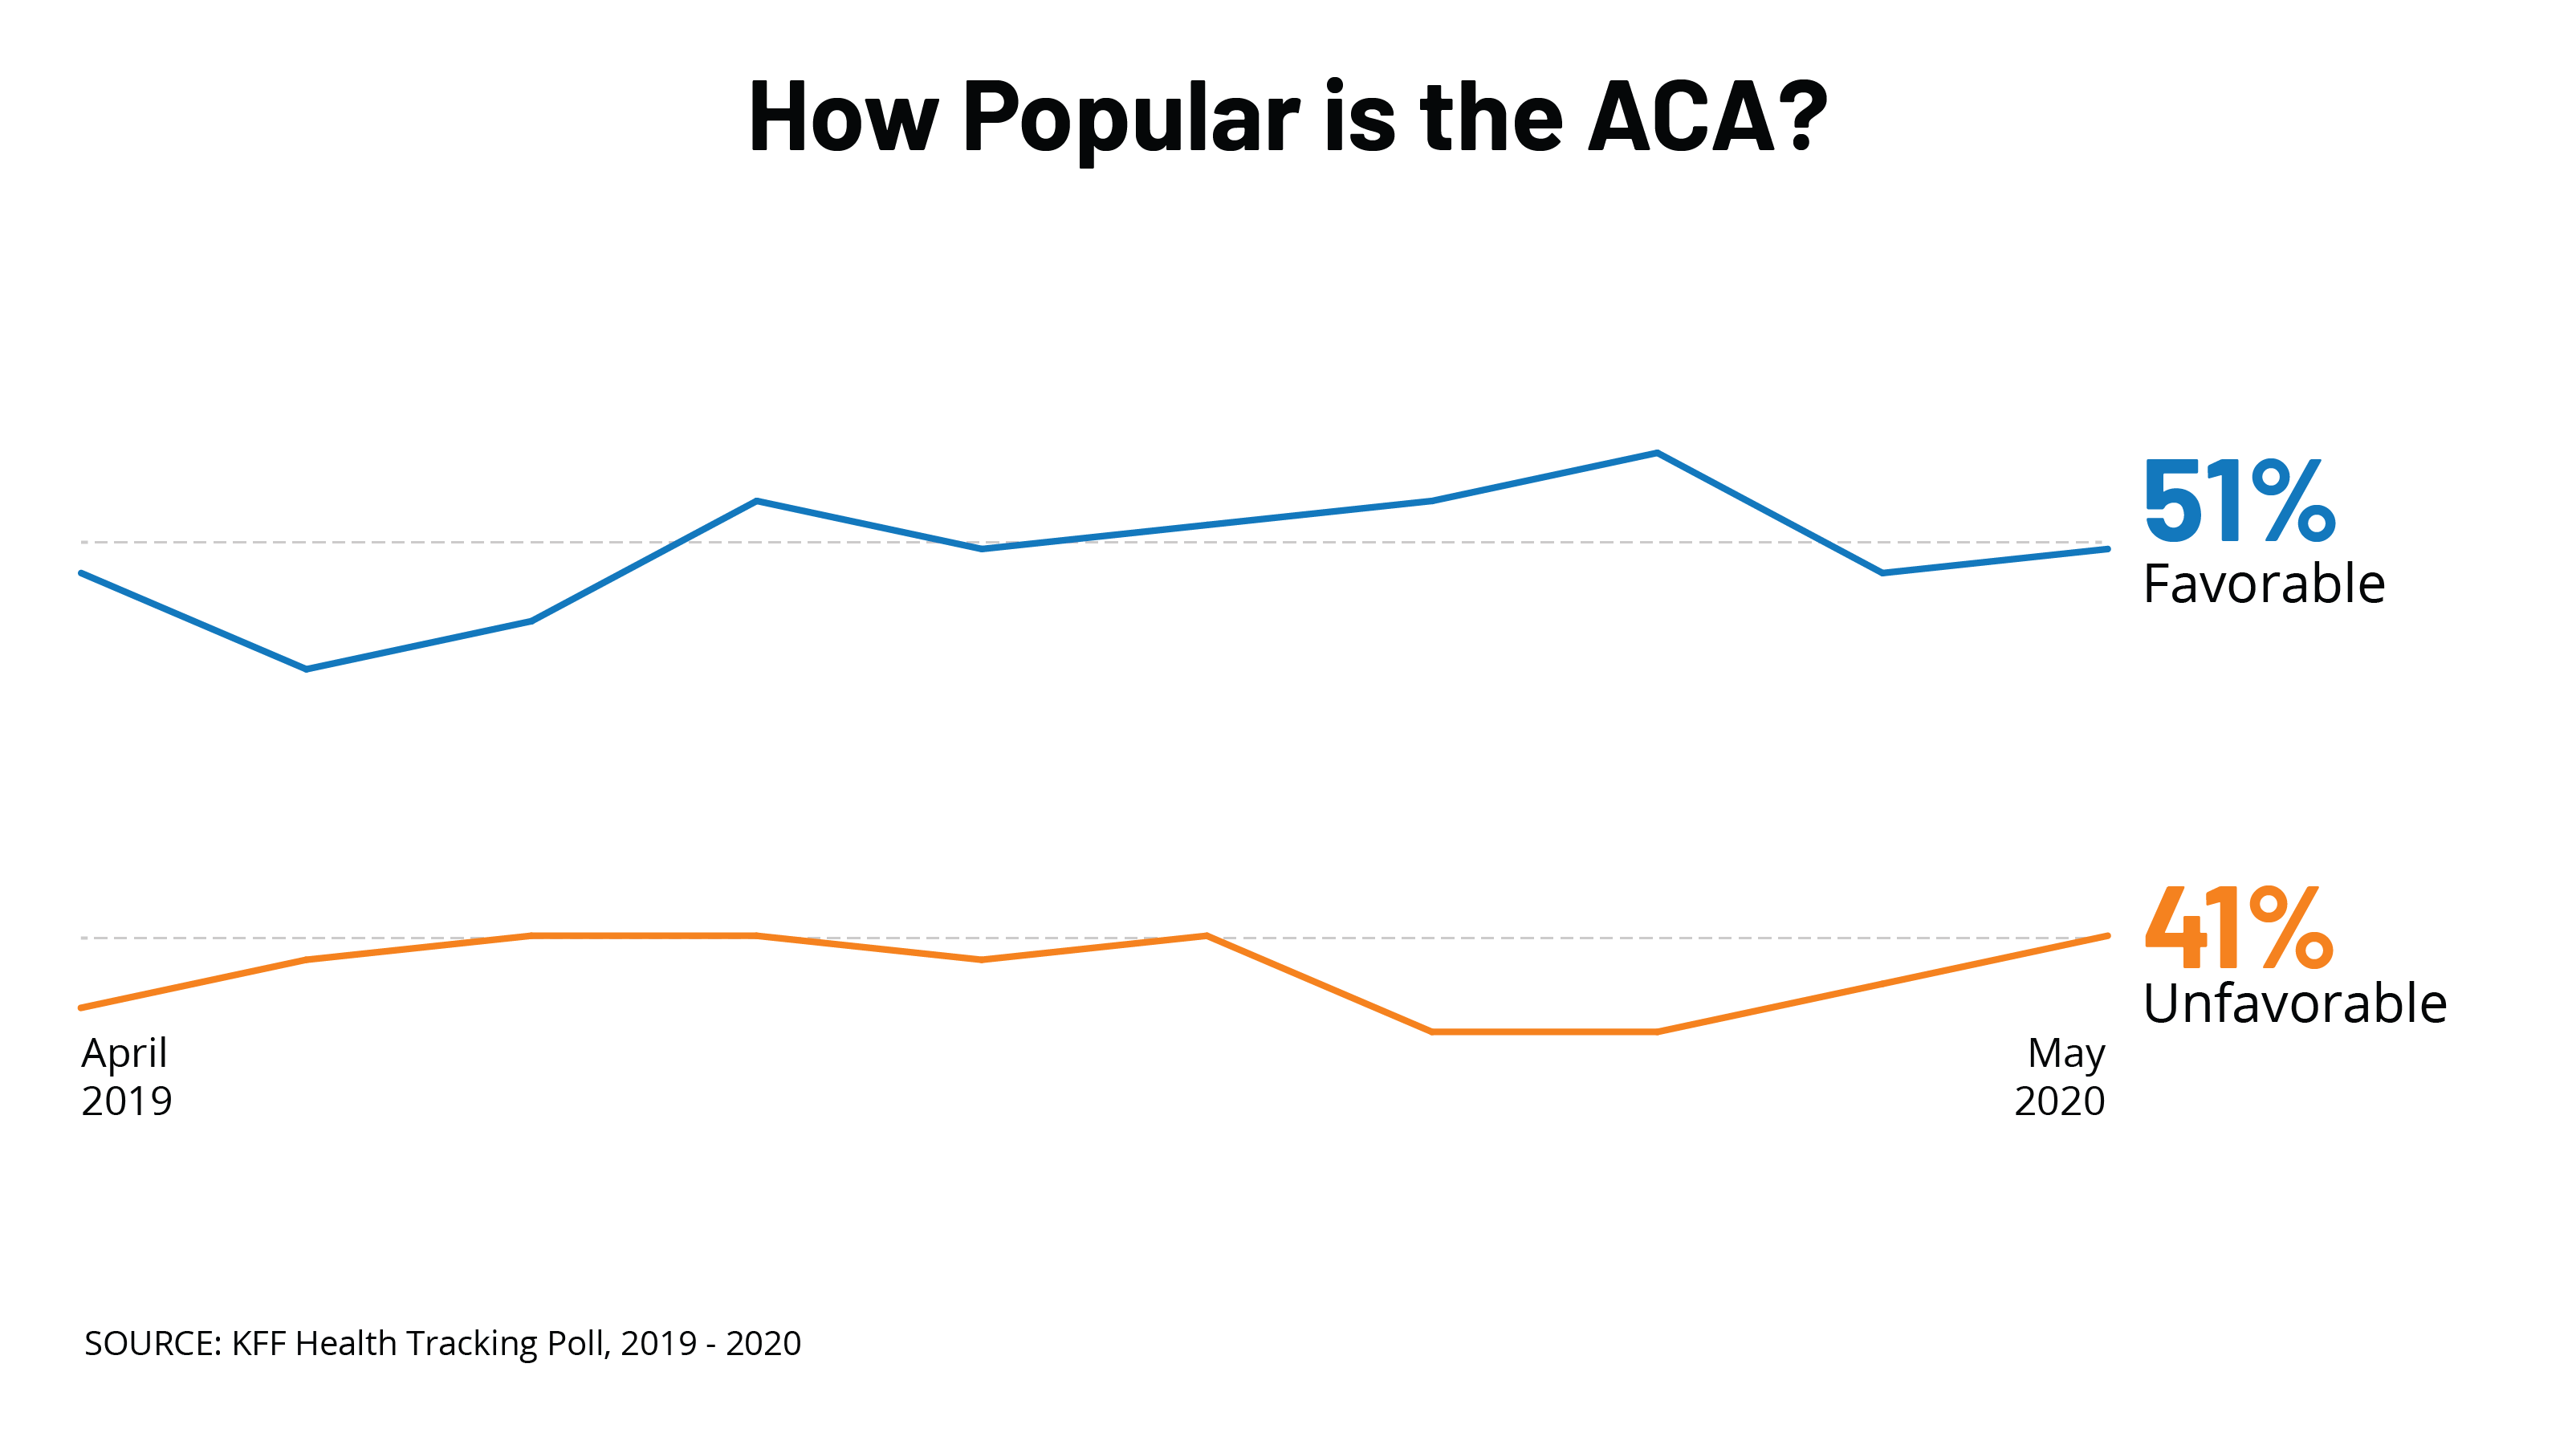 KFF Health Tracking Poll: The Public's Views on the ACA